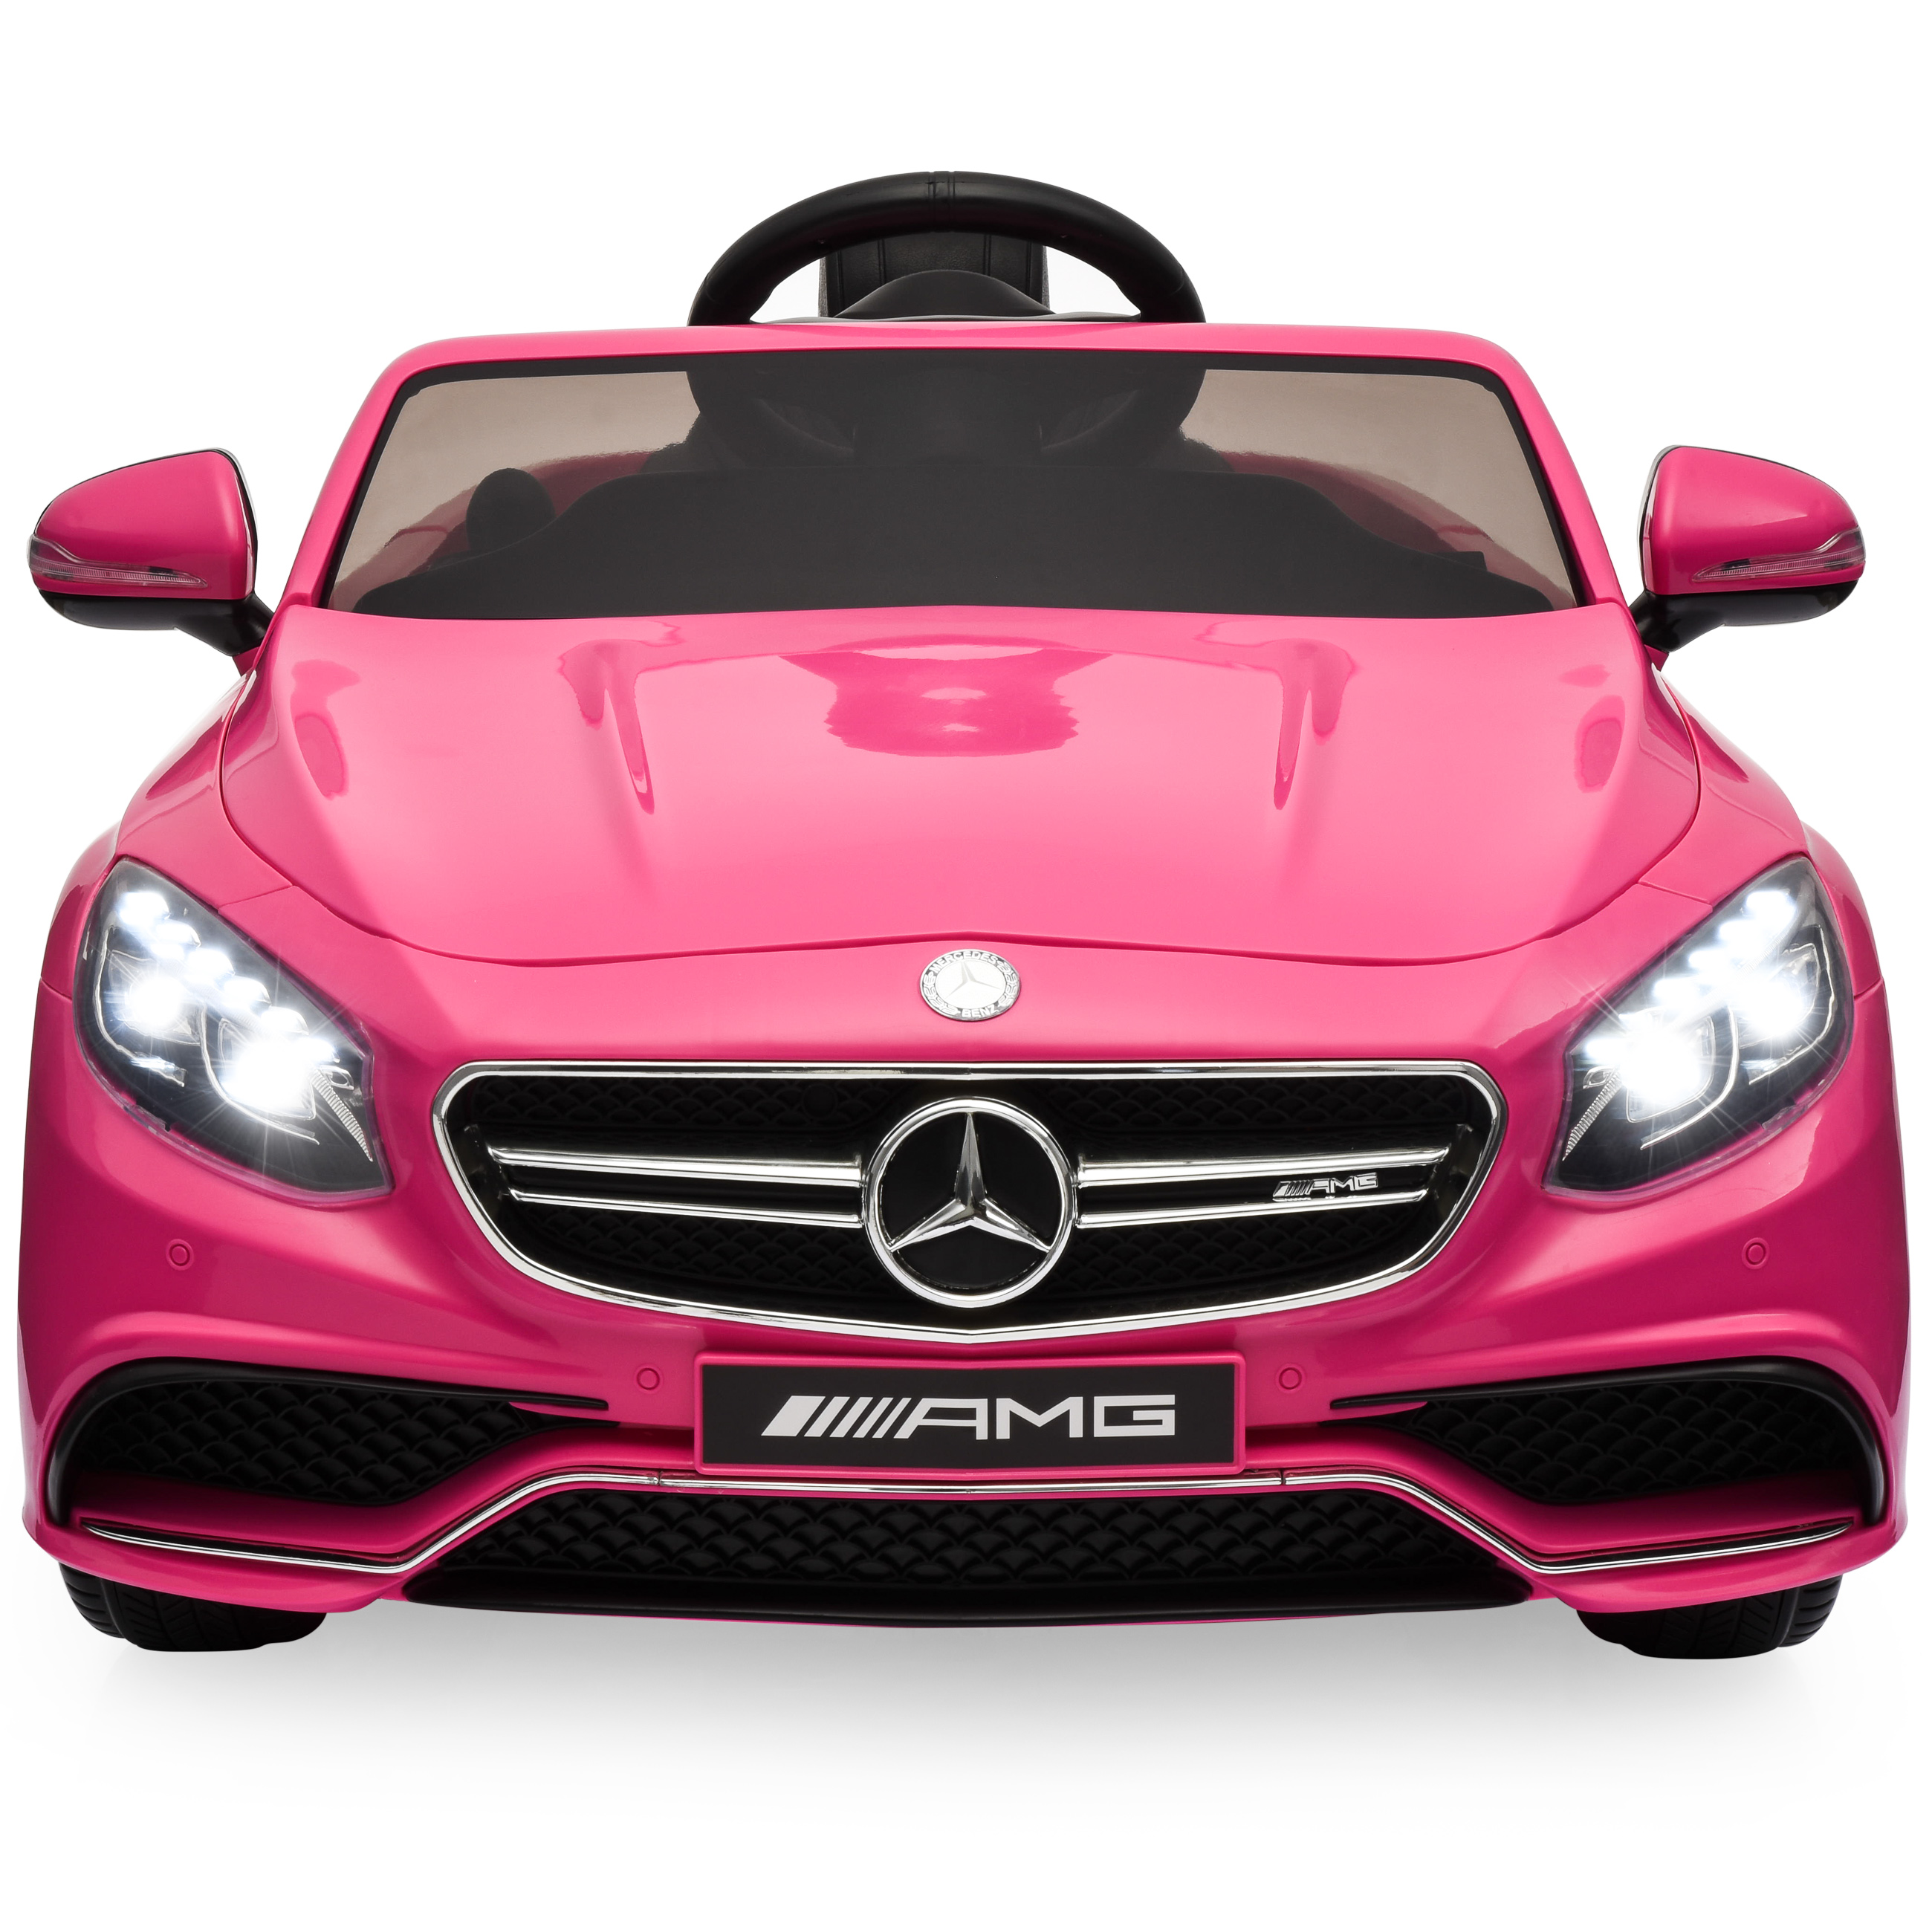 Best Choice Products 12V Ride On Mercedes S63 Coupe Car w/ Parent Remote, 3 Speeds, MP3 player, LED Lights - Pink